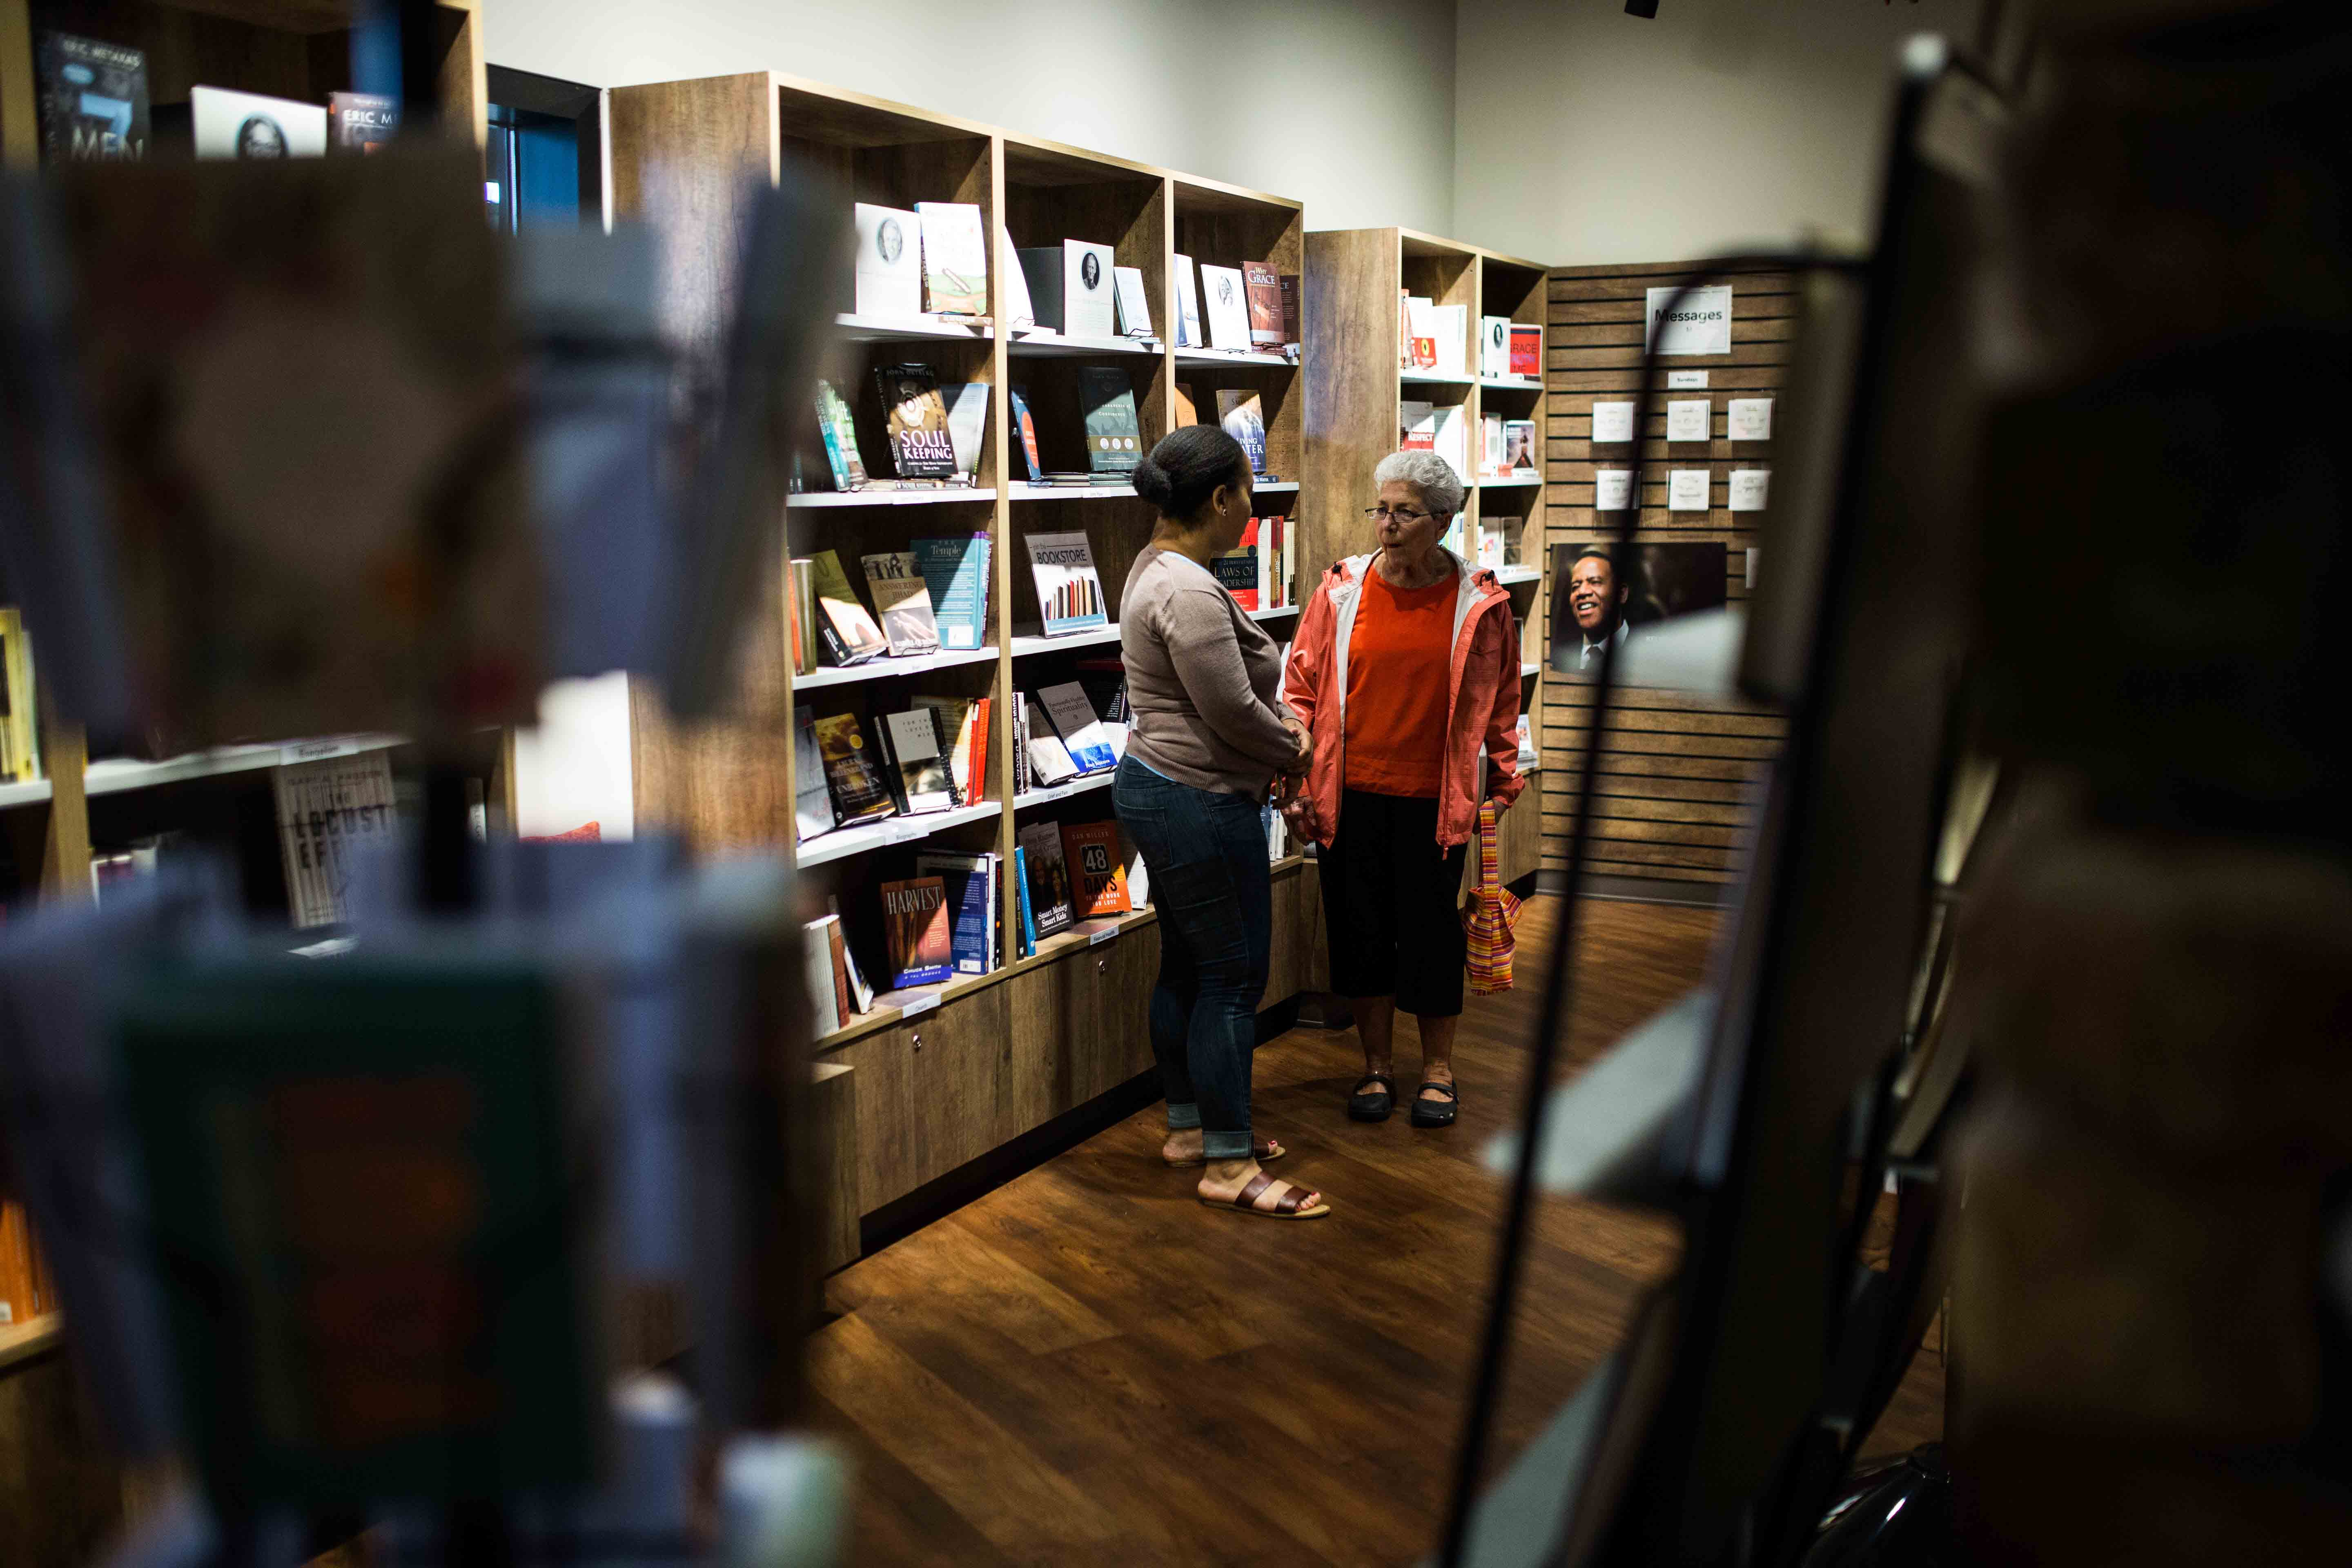 Two older people talking in a moody bookstore.